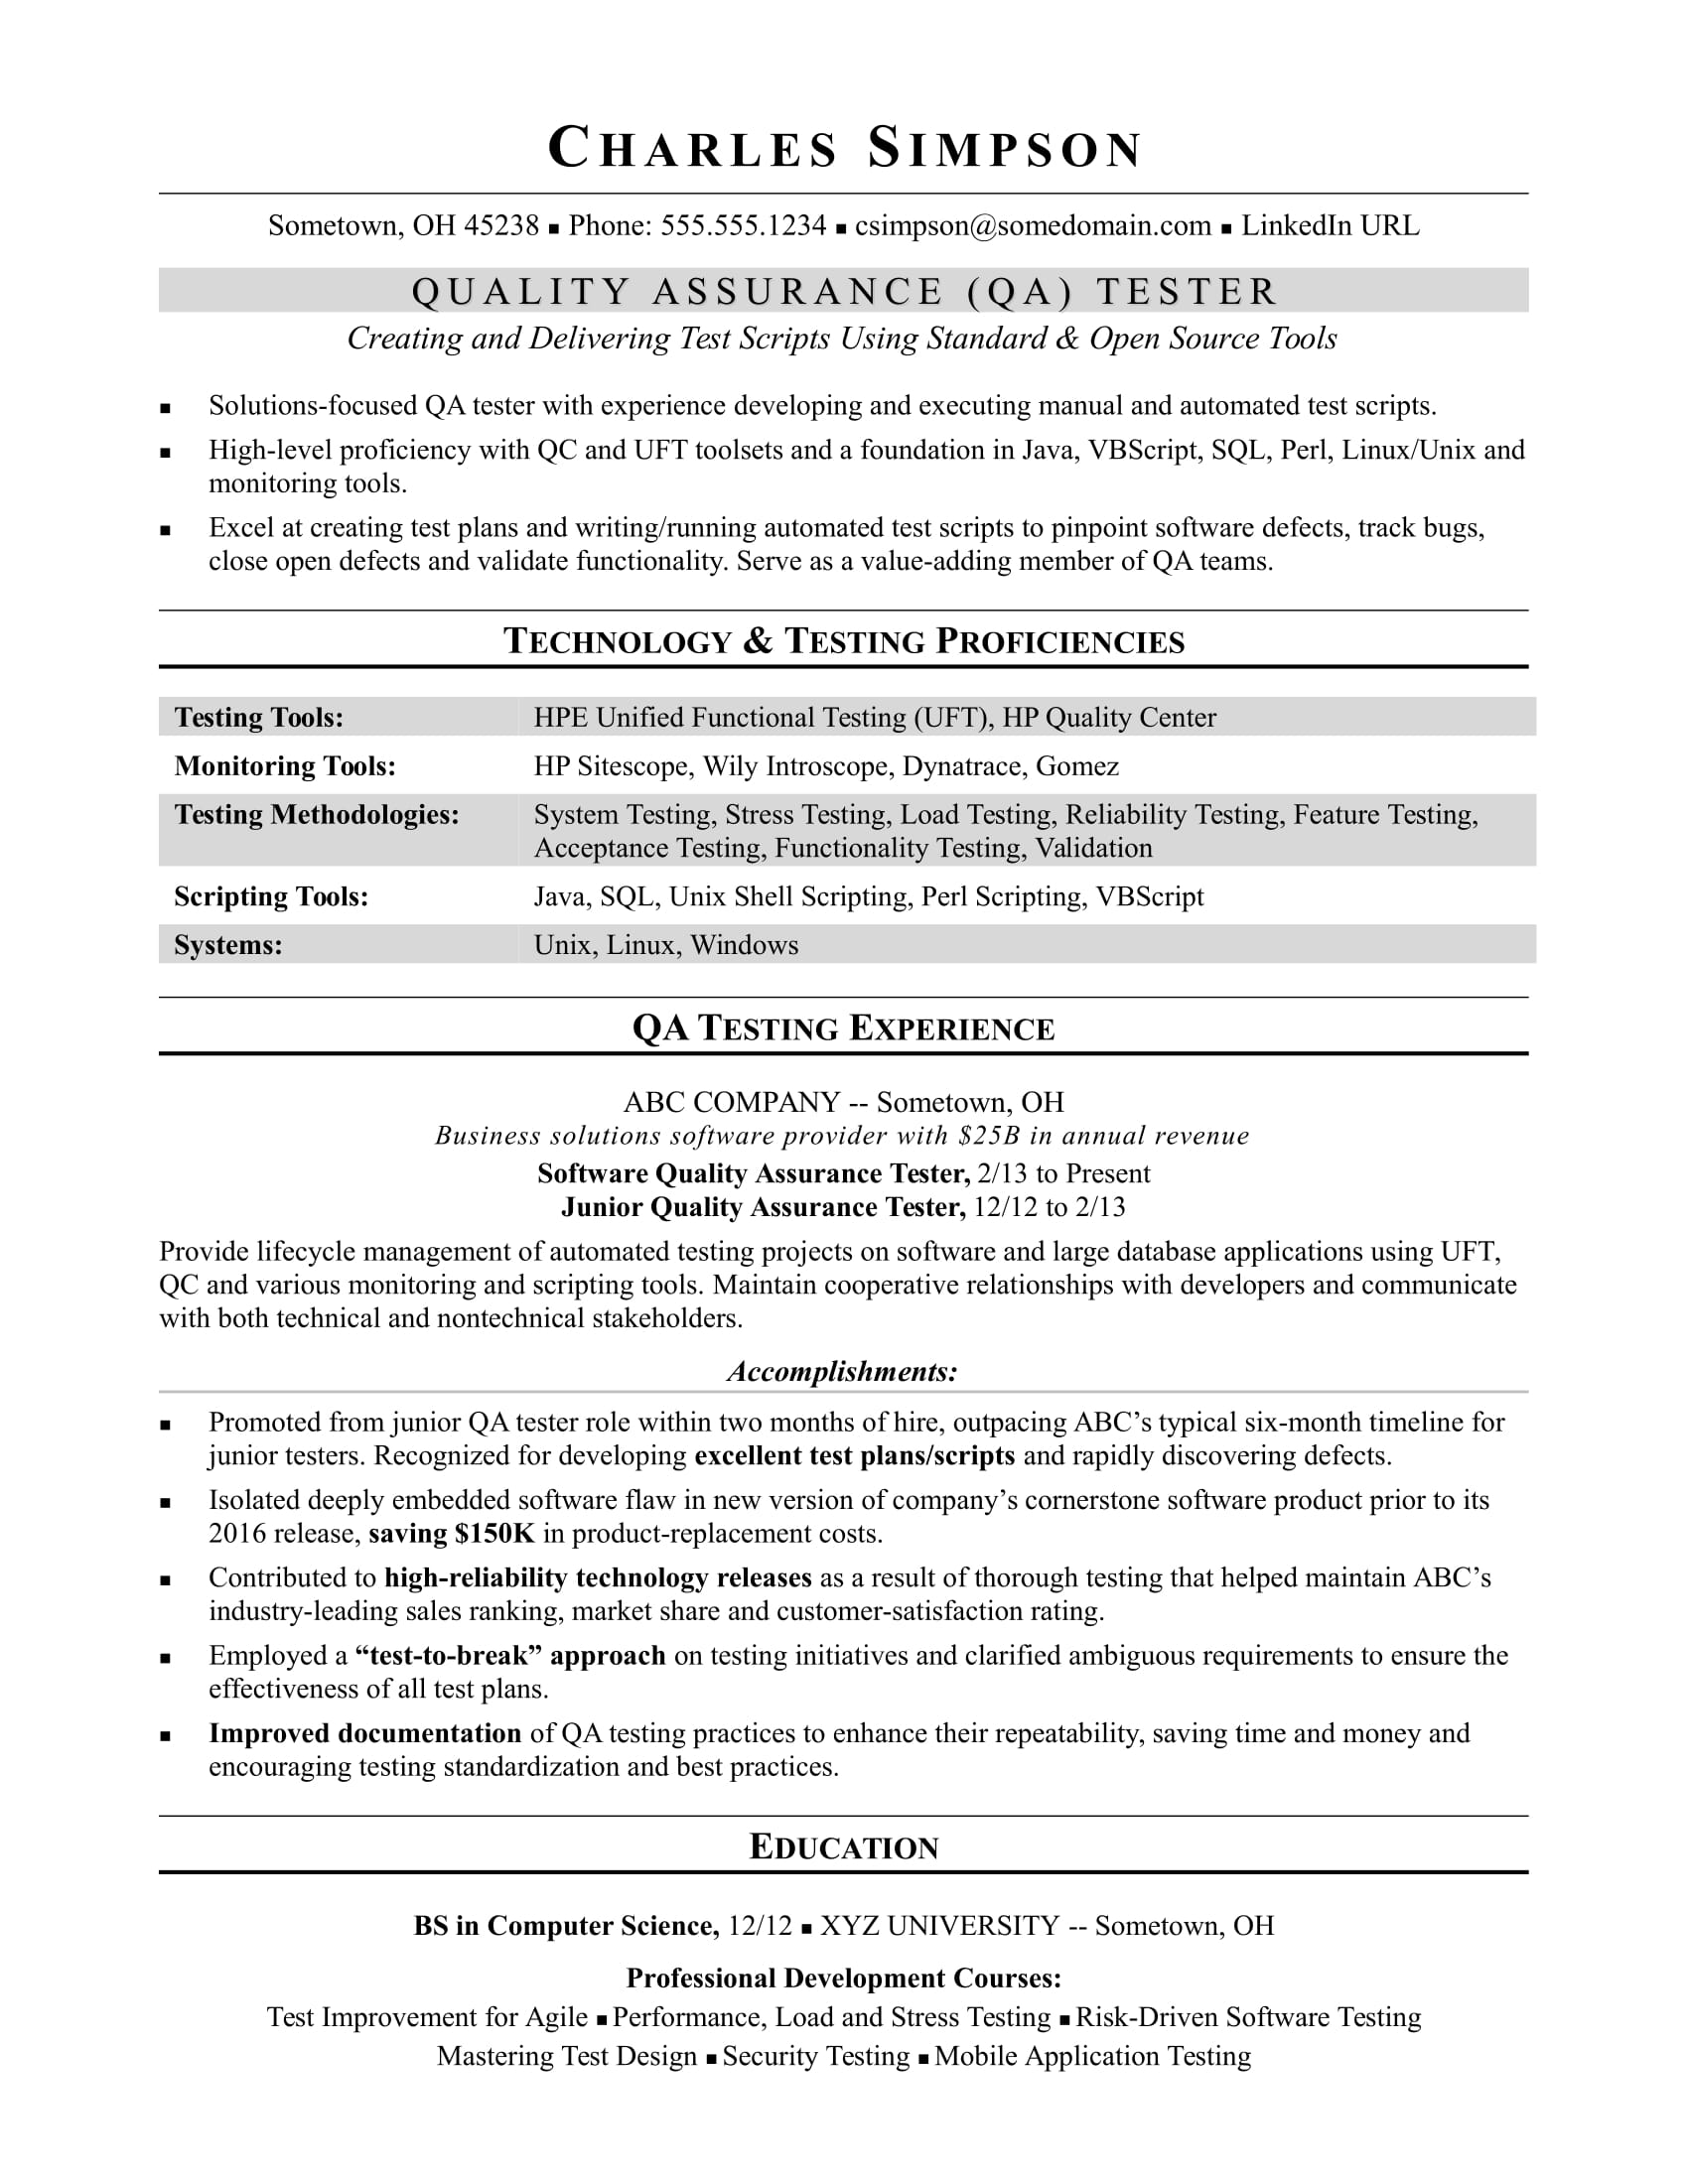 Software Testing Resume Format For Experienced Sample Resume For A Midlevel Qa Software Tester Monster